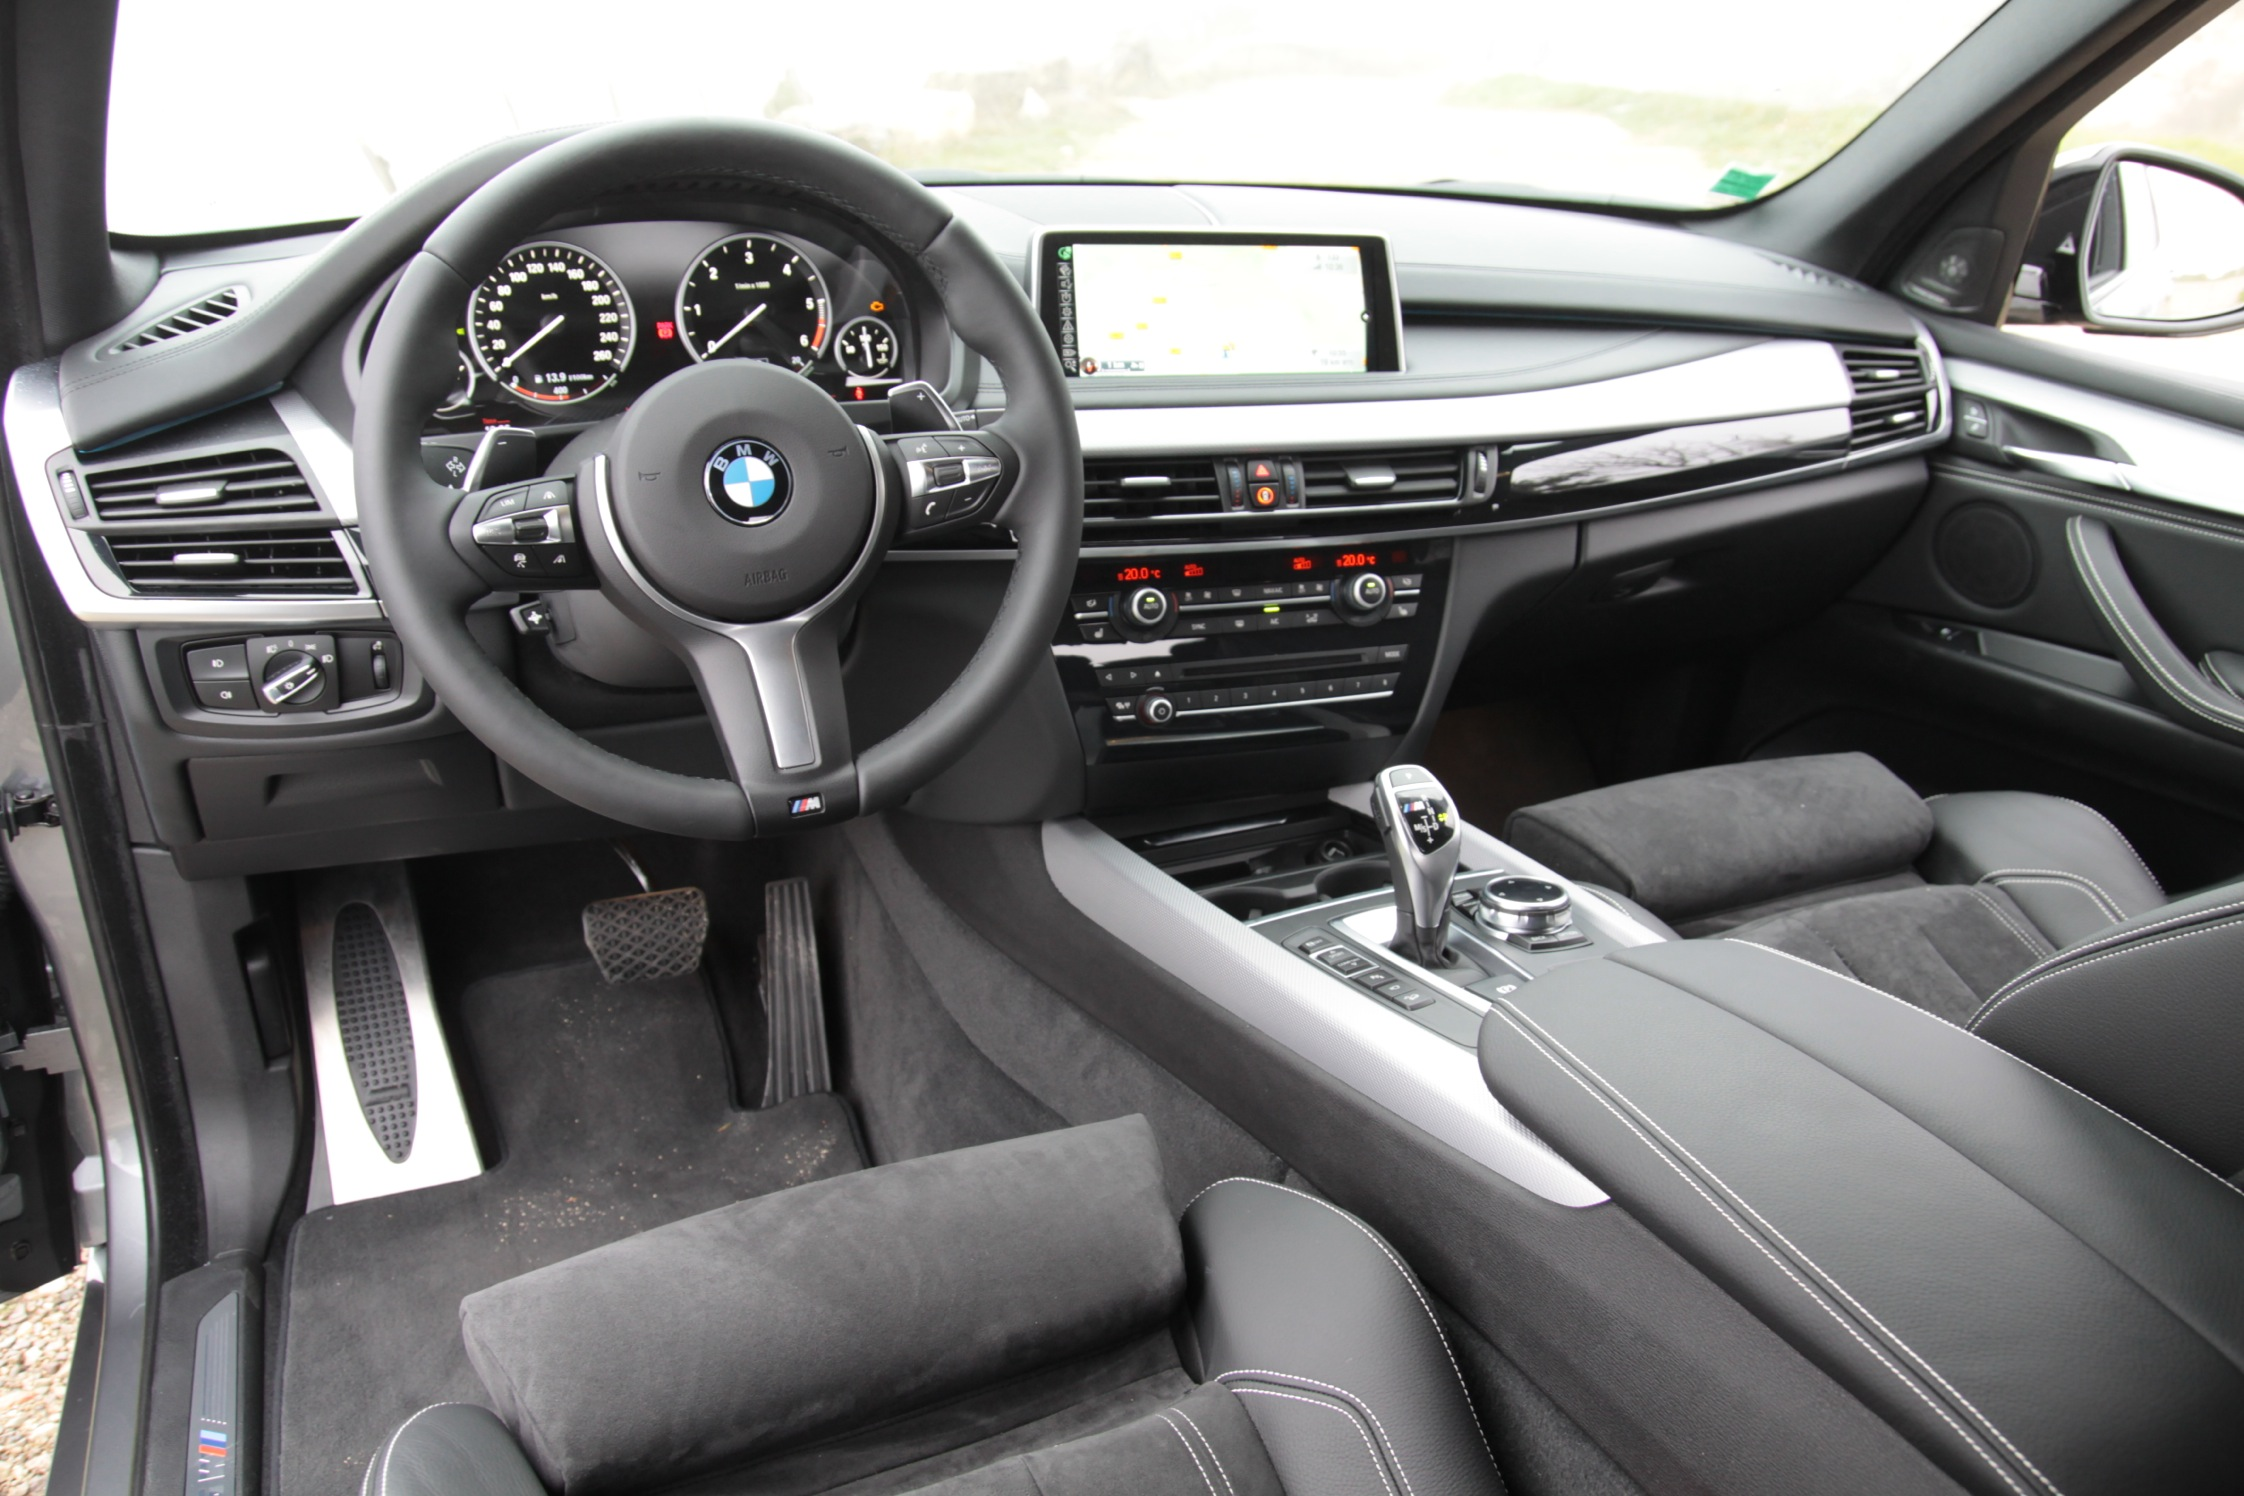 essai bmw x5 m50d motorlegend. Black Bedroom Furniture Sets. Home Design Ideas